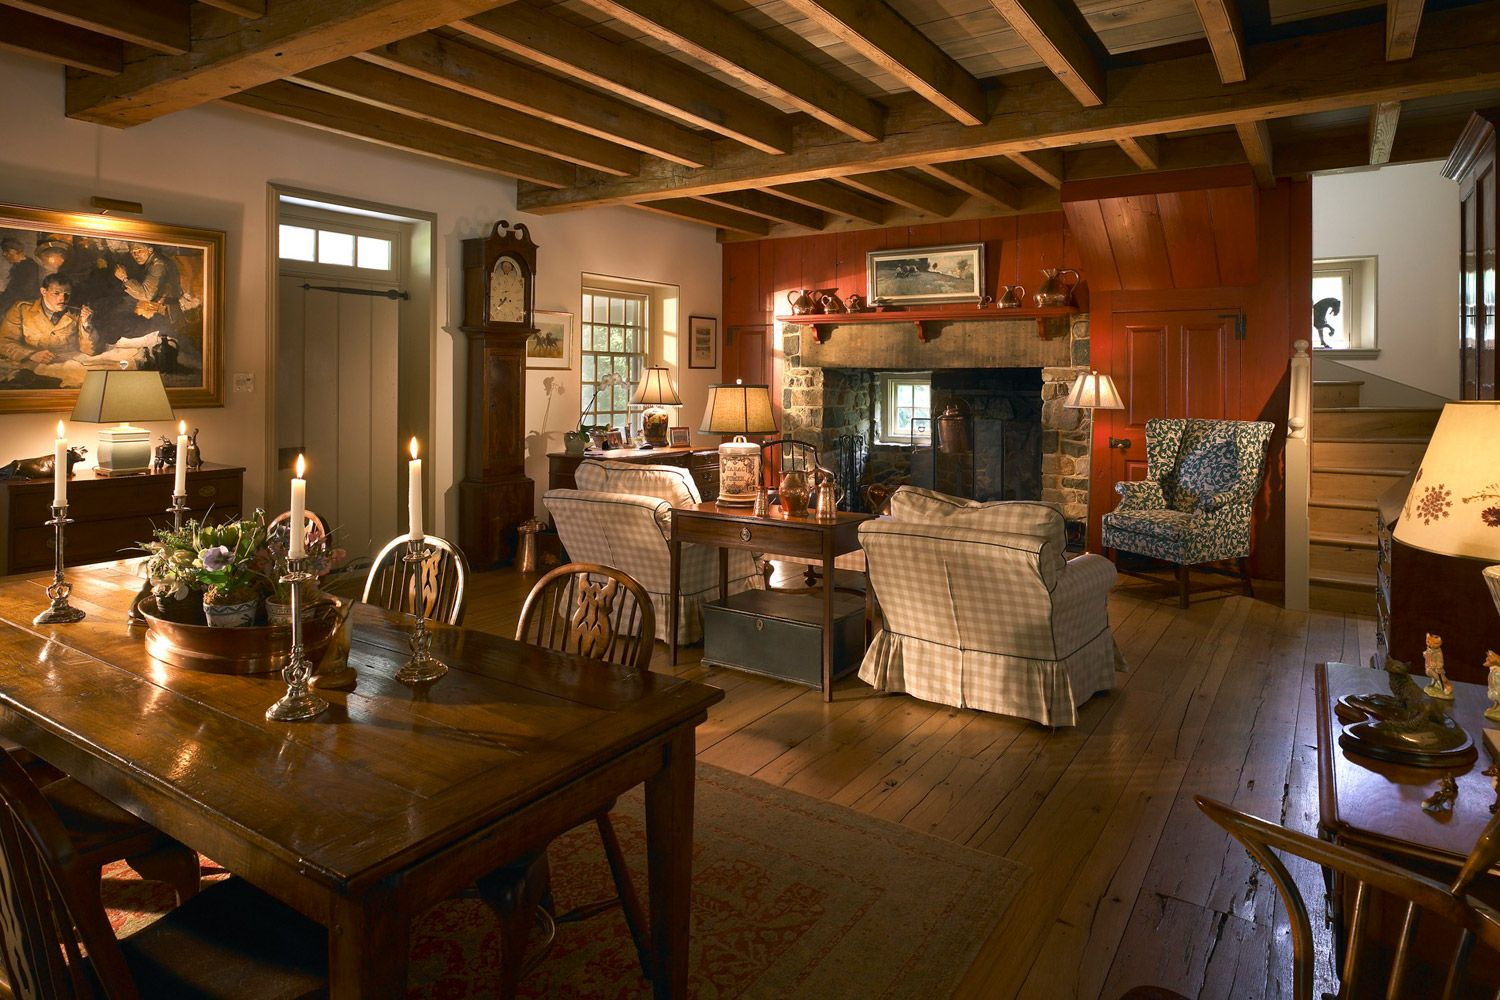 American Country Cottage Decorating: Design & Preservation